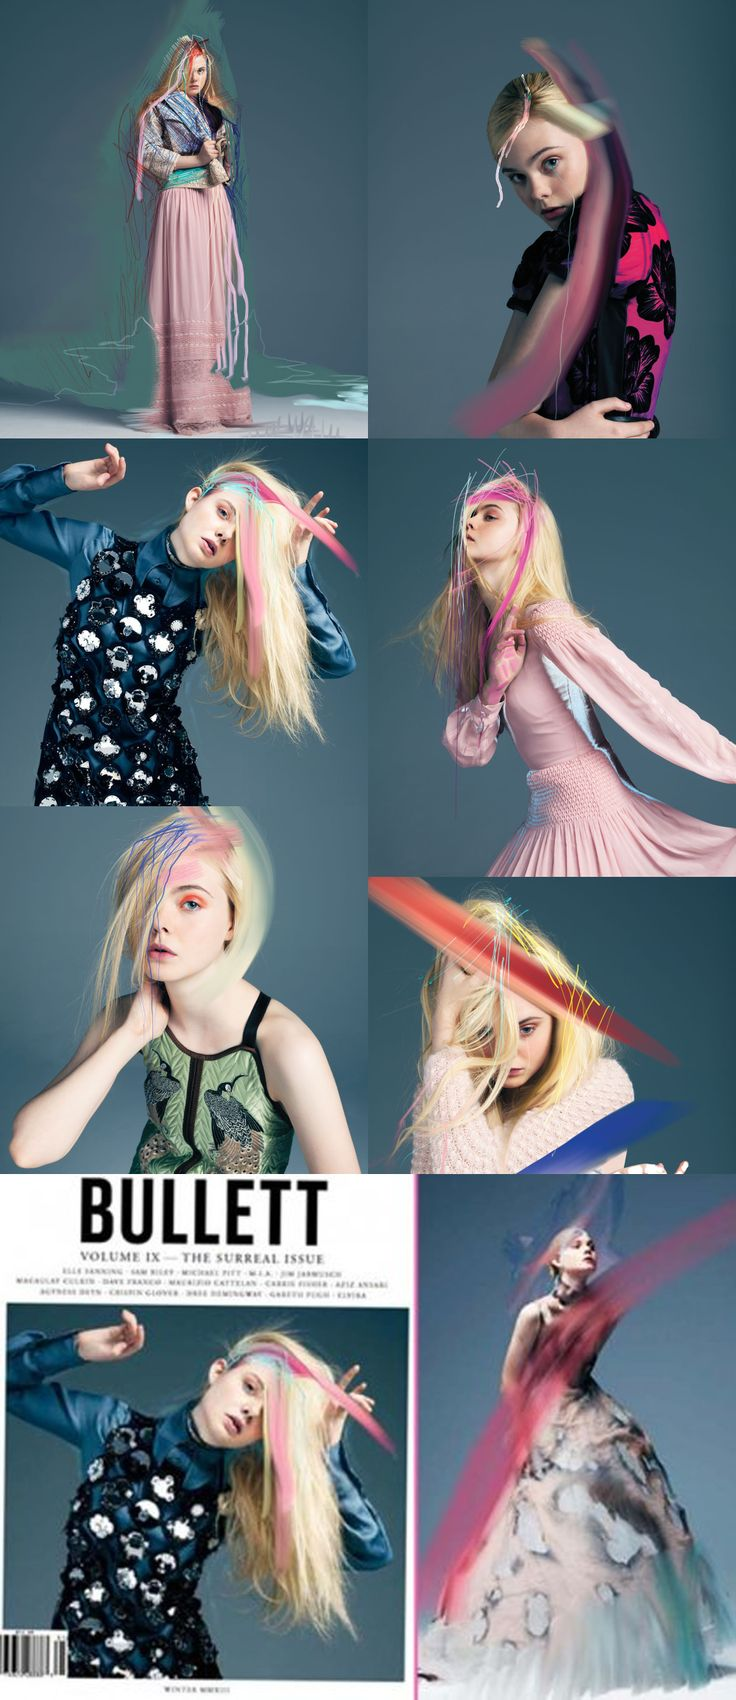 Gorgeous studio photos mixed with surreal brush strokes. Elle Fanning at Bullett Magazine's Winter 2012 Cover Shoot